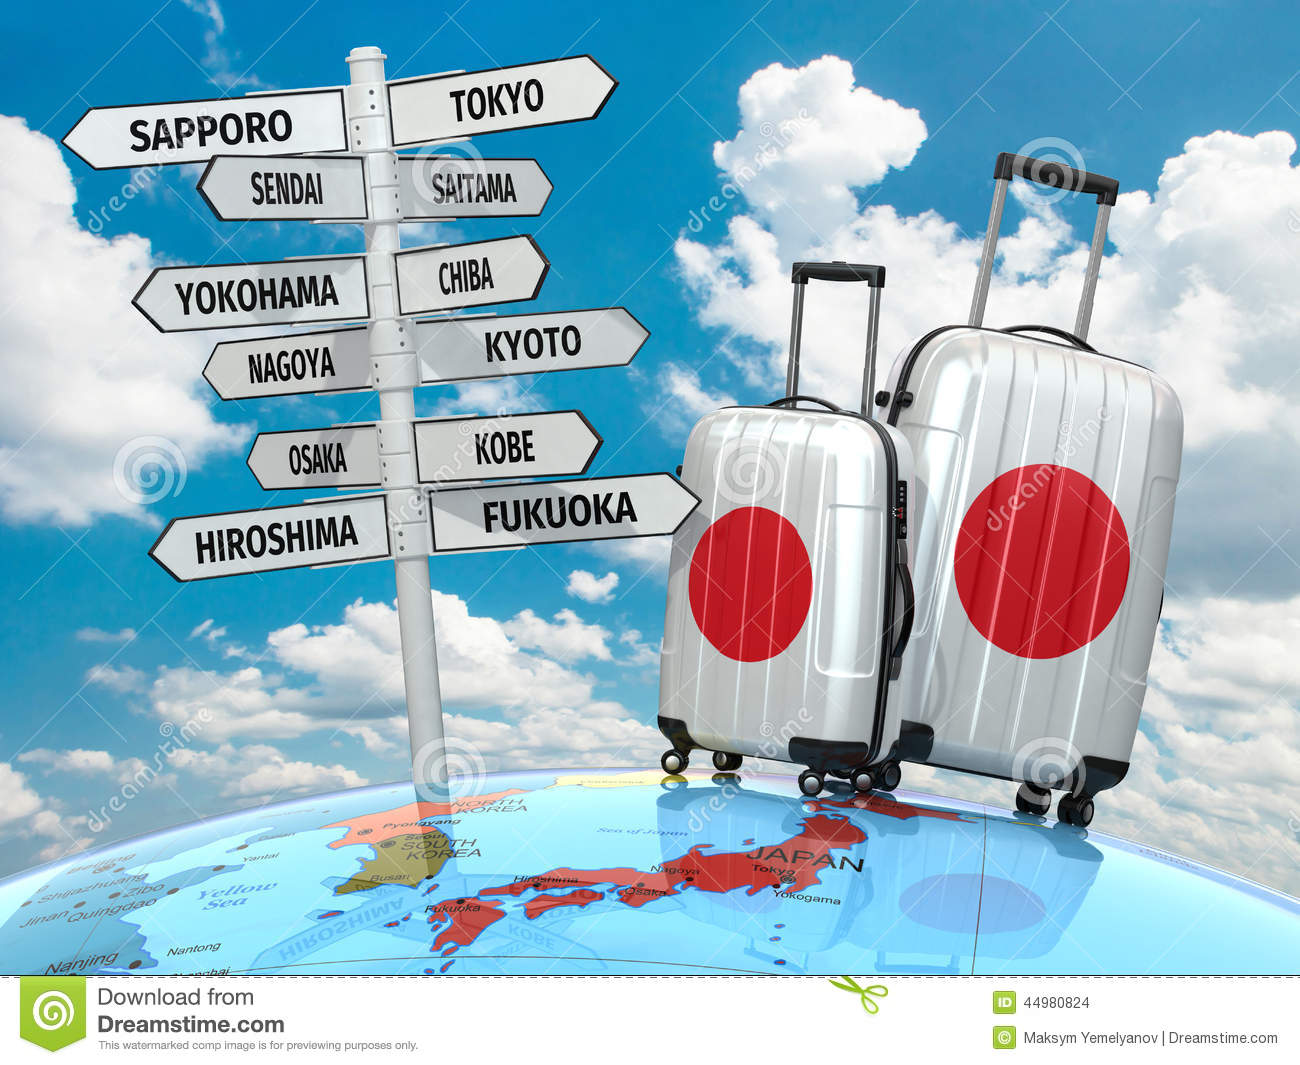 Is It Save To Travel To Tokyo In